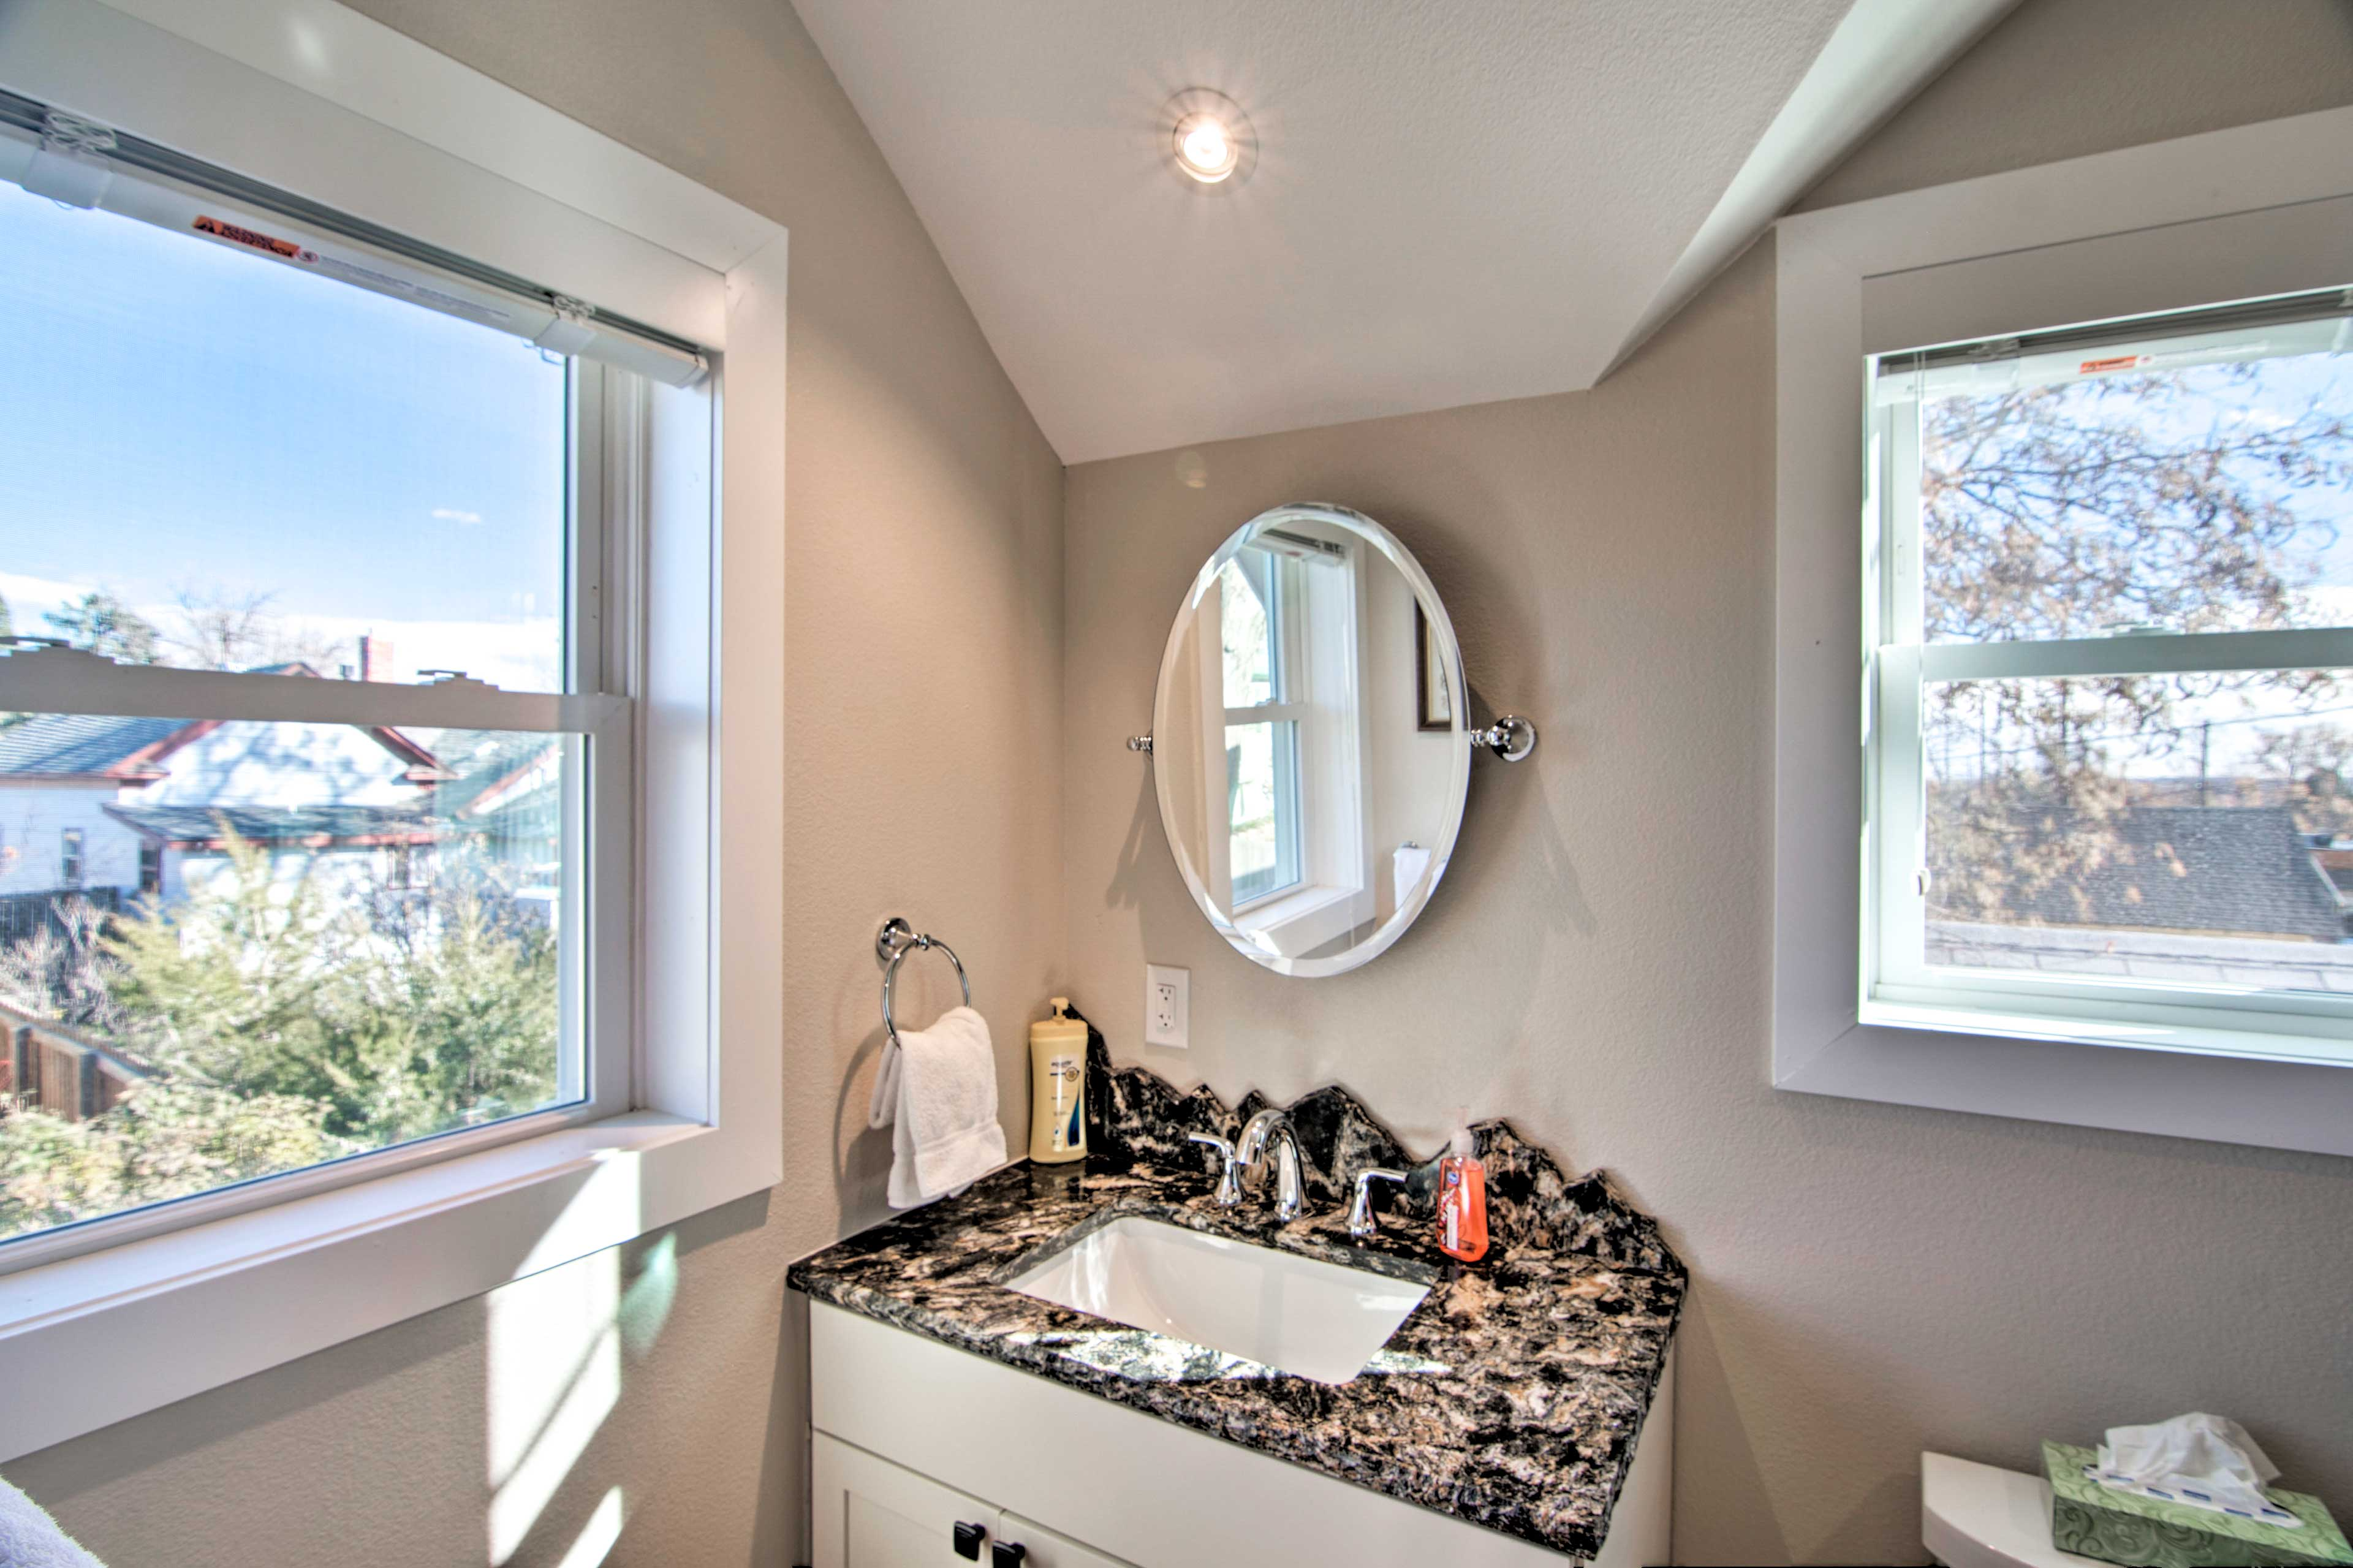 Easily get ready at the mirrored vanity.